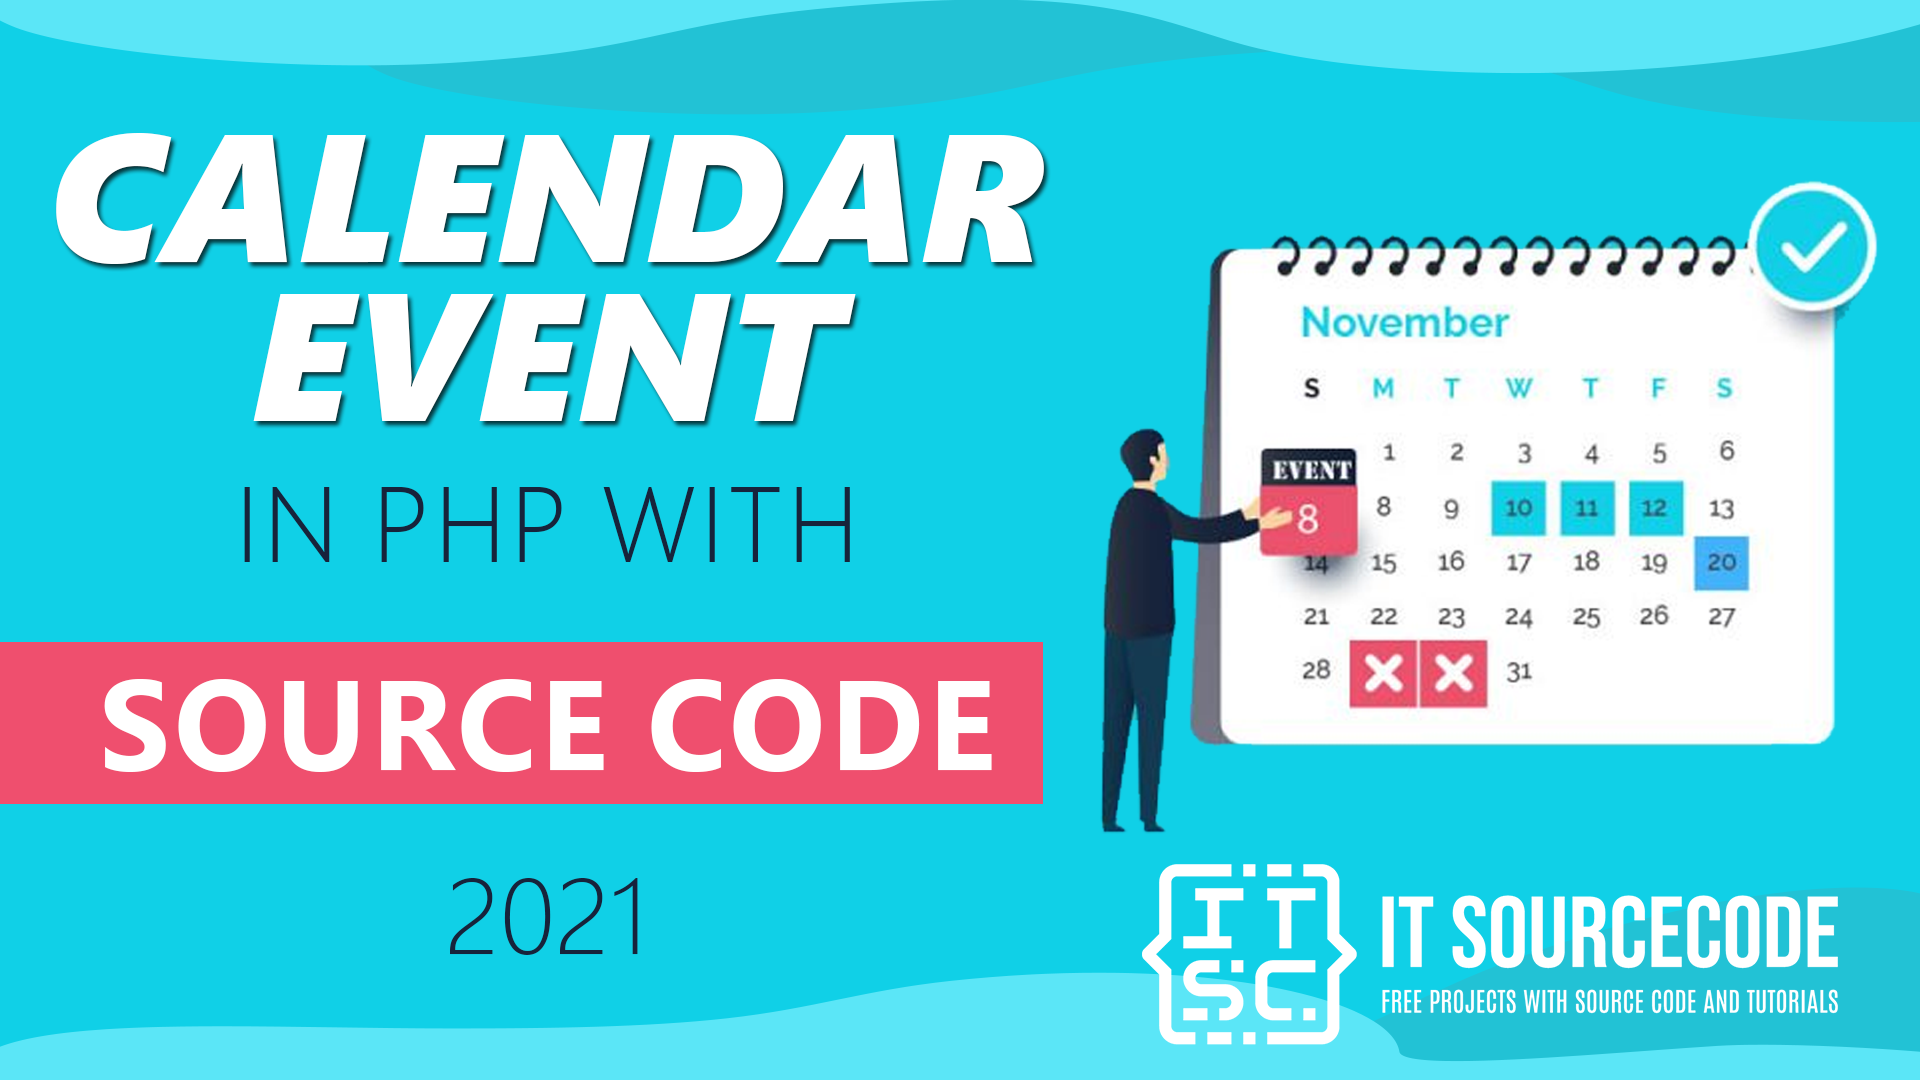 Calendar Event In PHP With Source Code